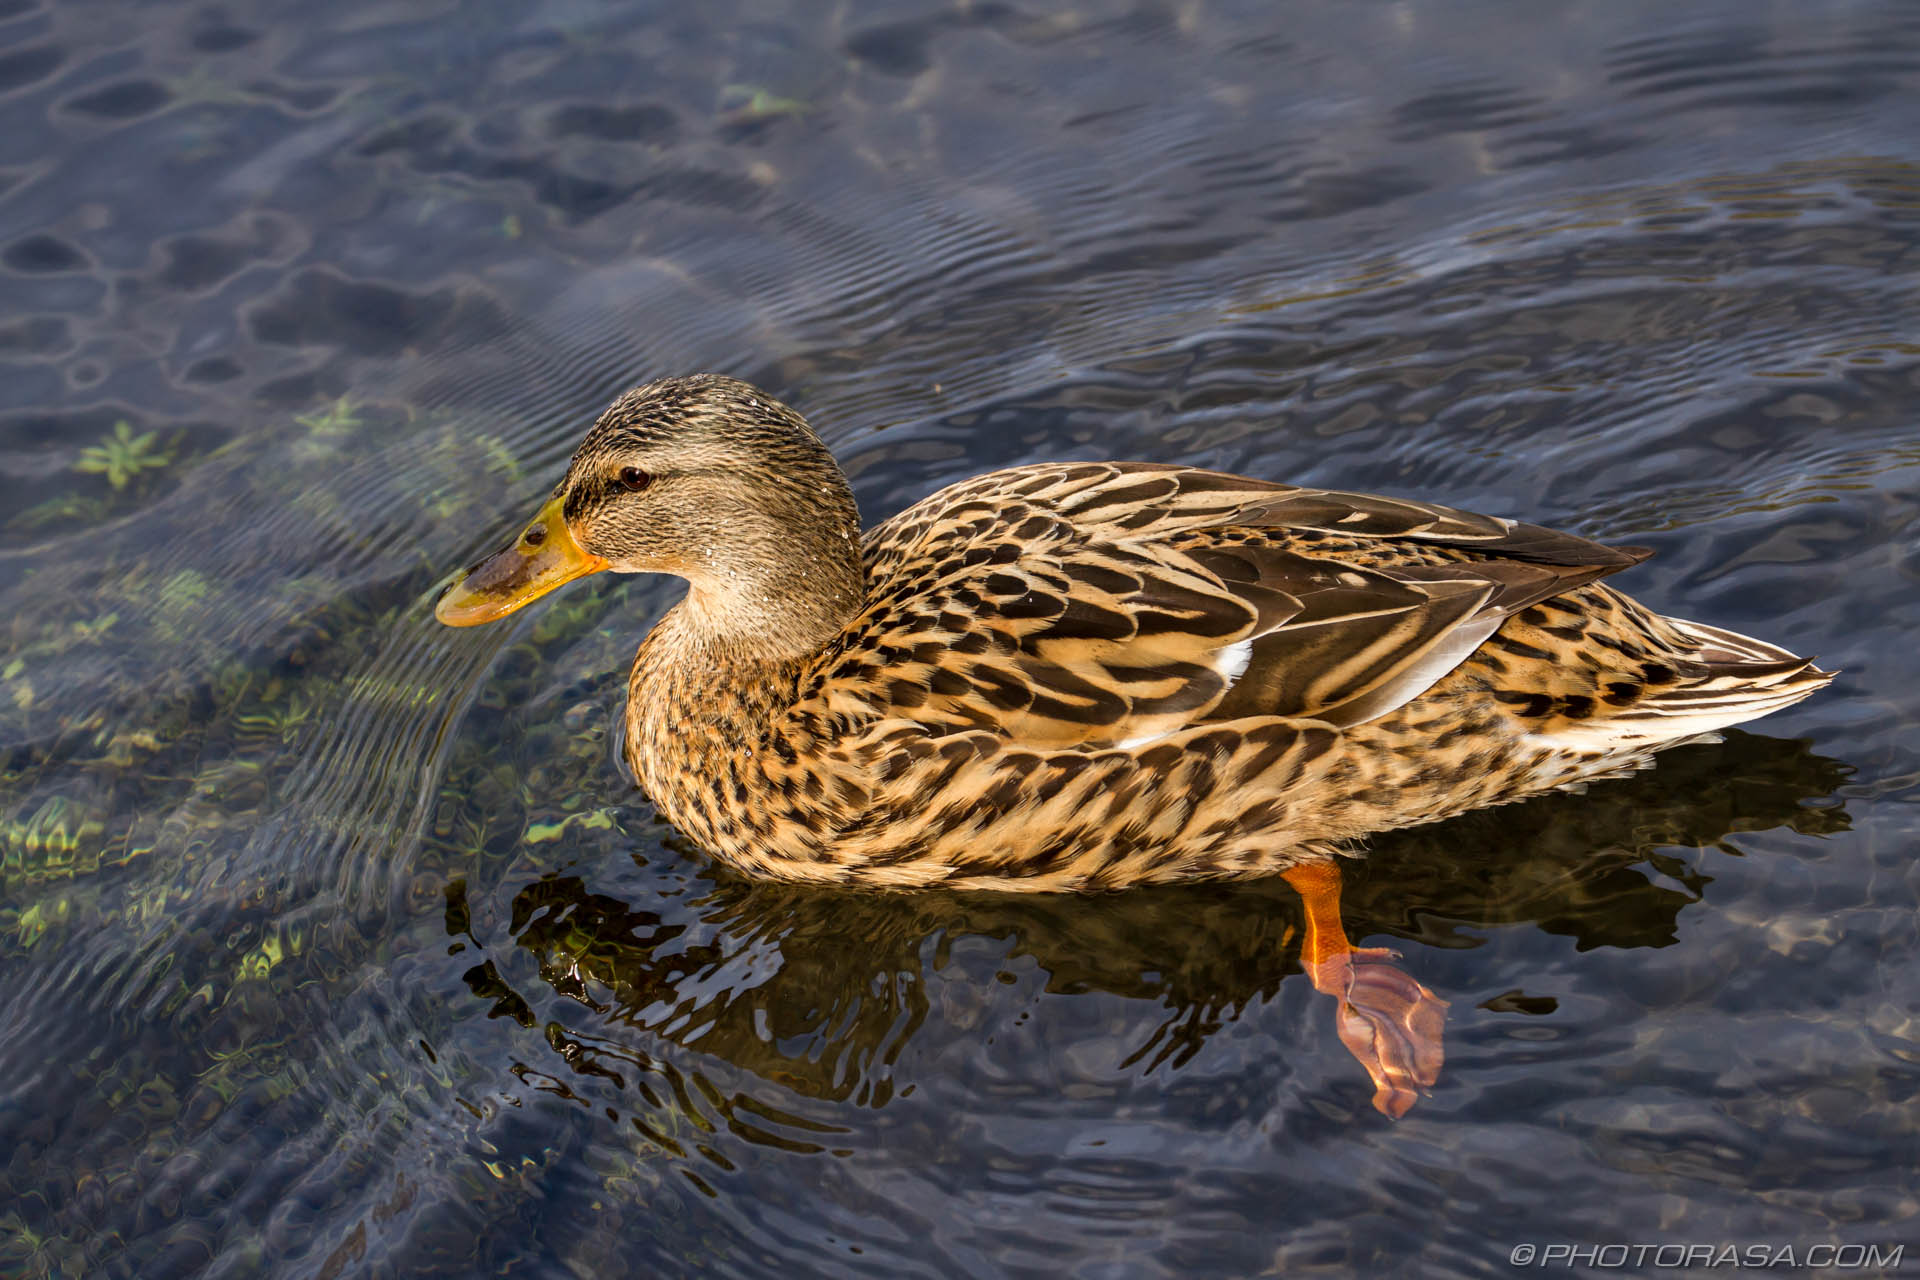 http://photorasa.com/mallard-ducks/mallard-swimming-past/